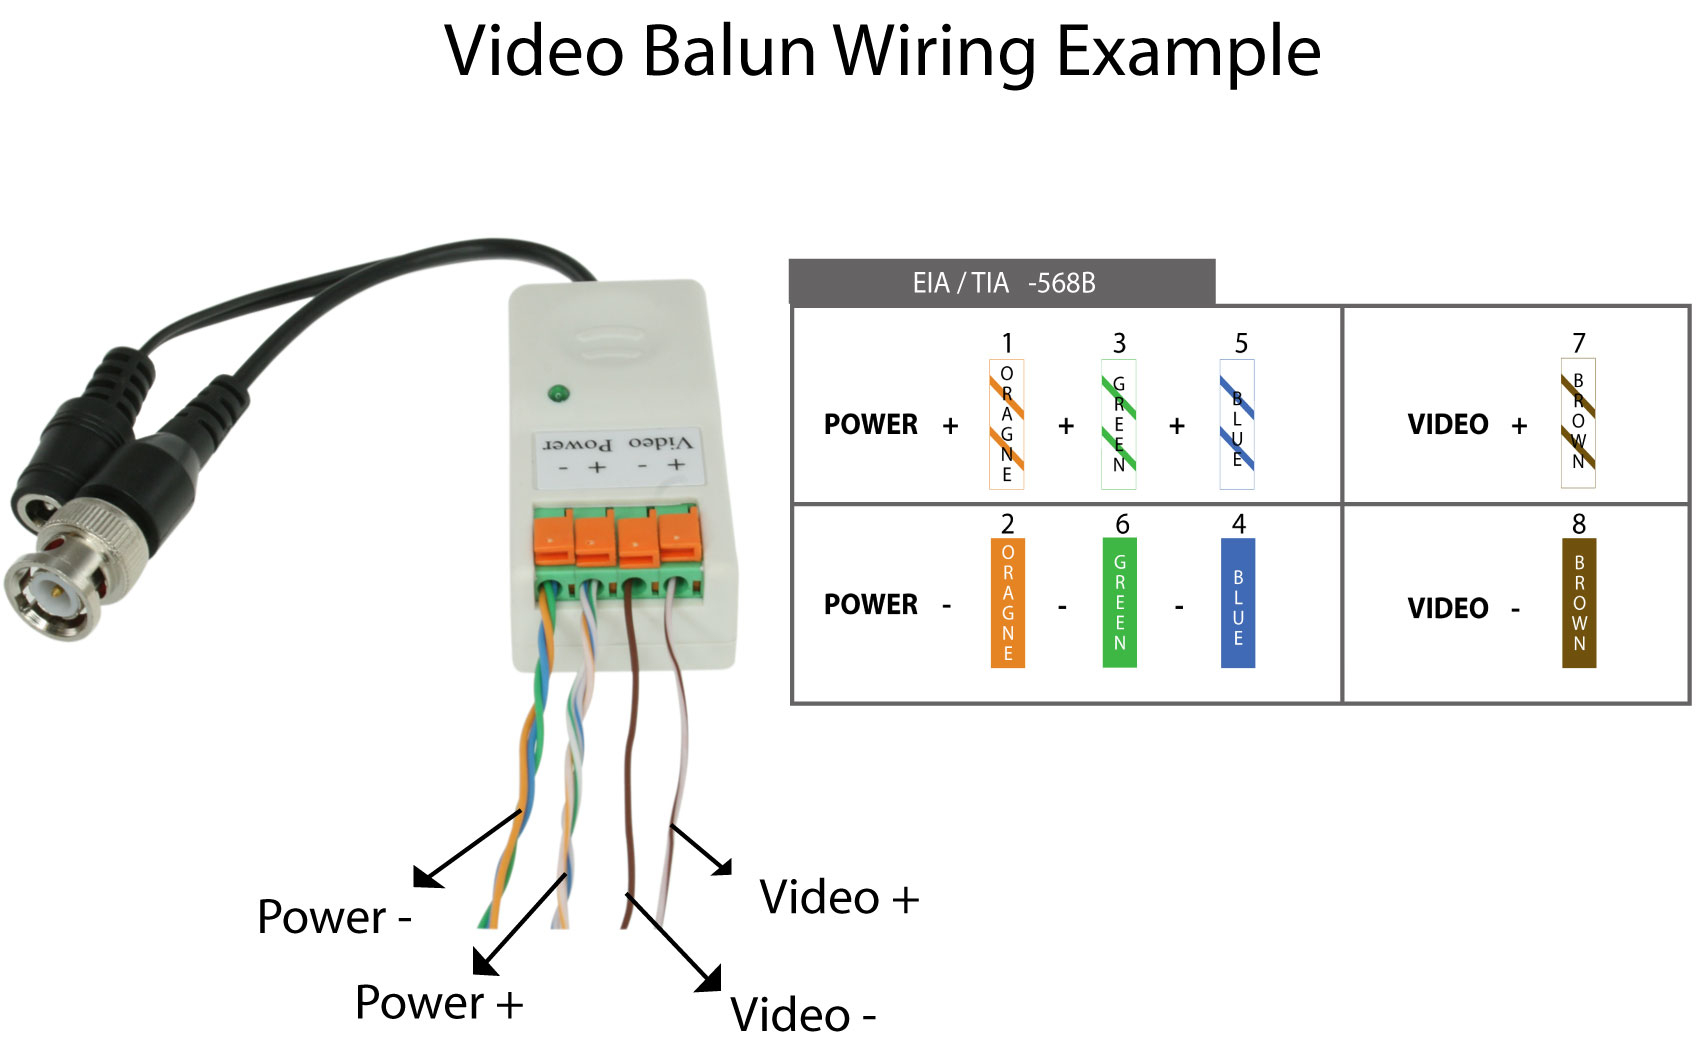 Usb Serial Rj45 Wiring Diagram | Wiring Diagram - Usb To Uart Cable Wiring Diagram